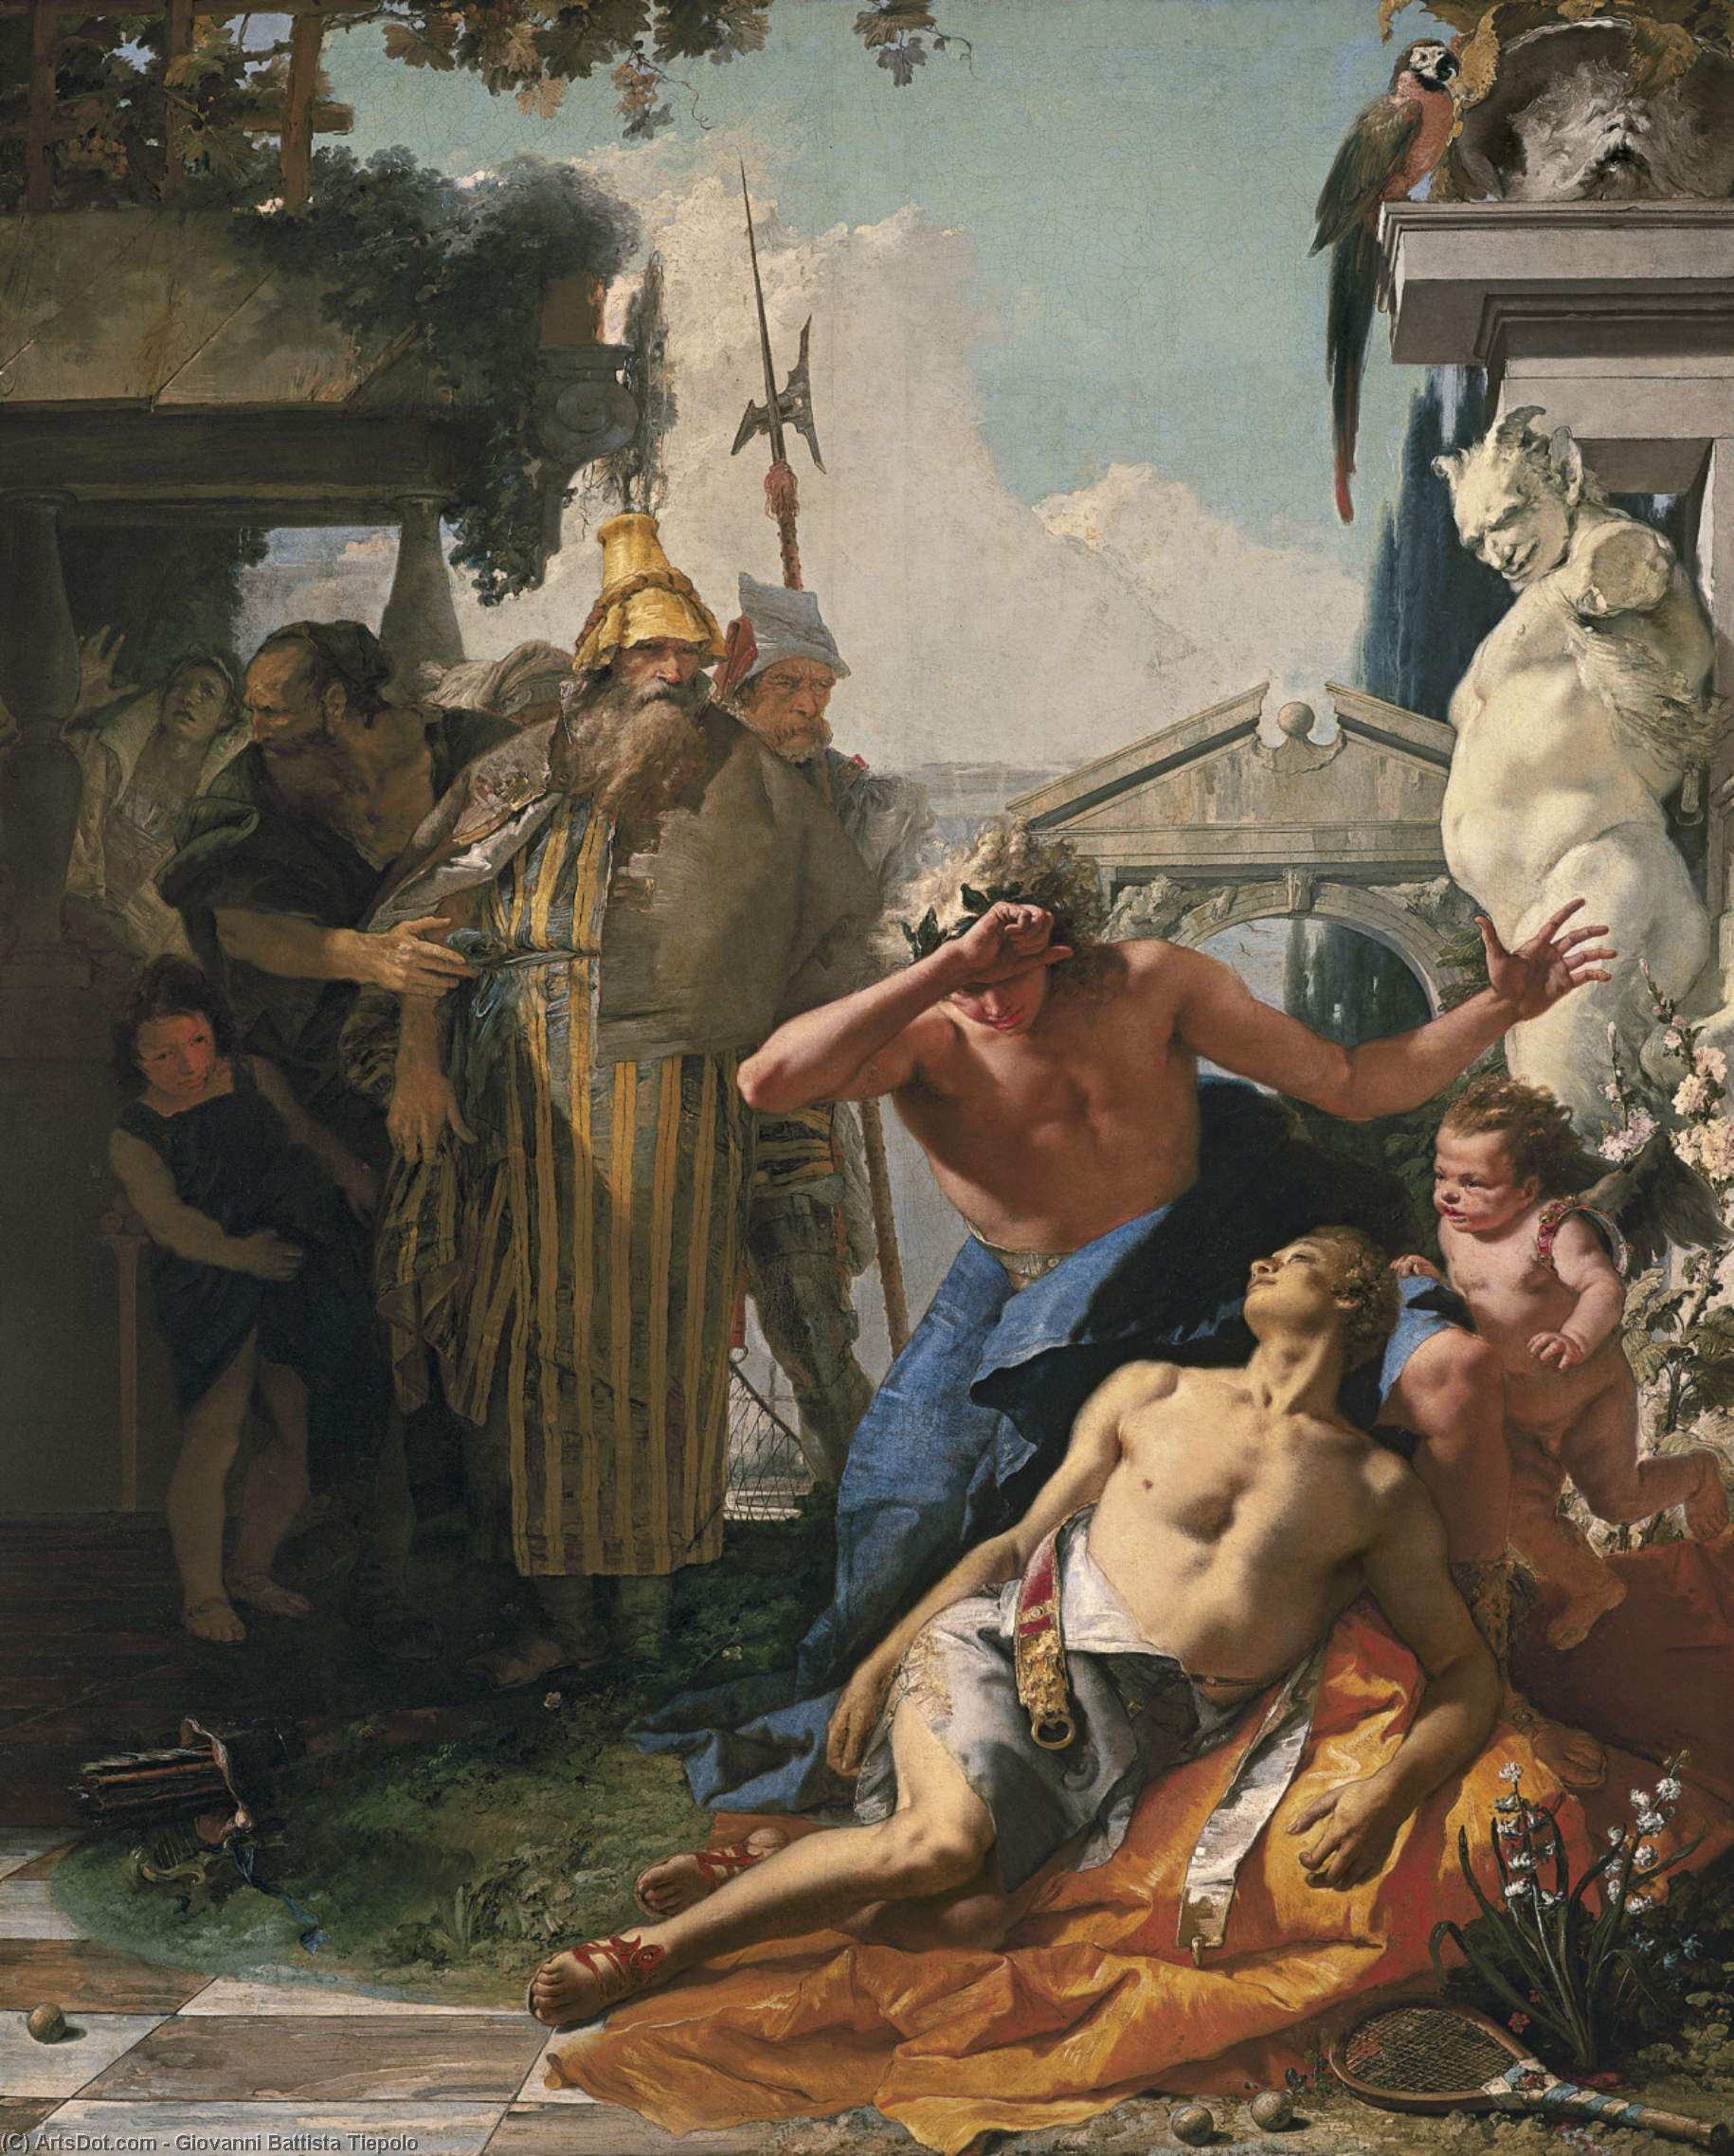 Wikioo.org - The Encyclopedia of Fine Arts - Painting, Artwork by Giovanni Battista Tiepolo - The Death of Hyacinthus